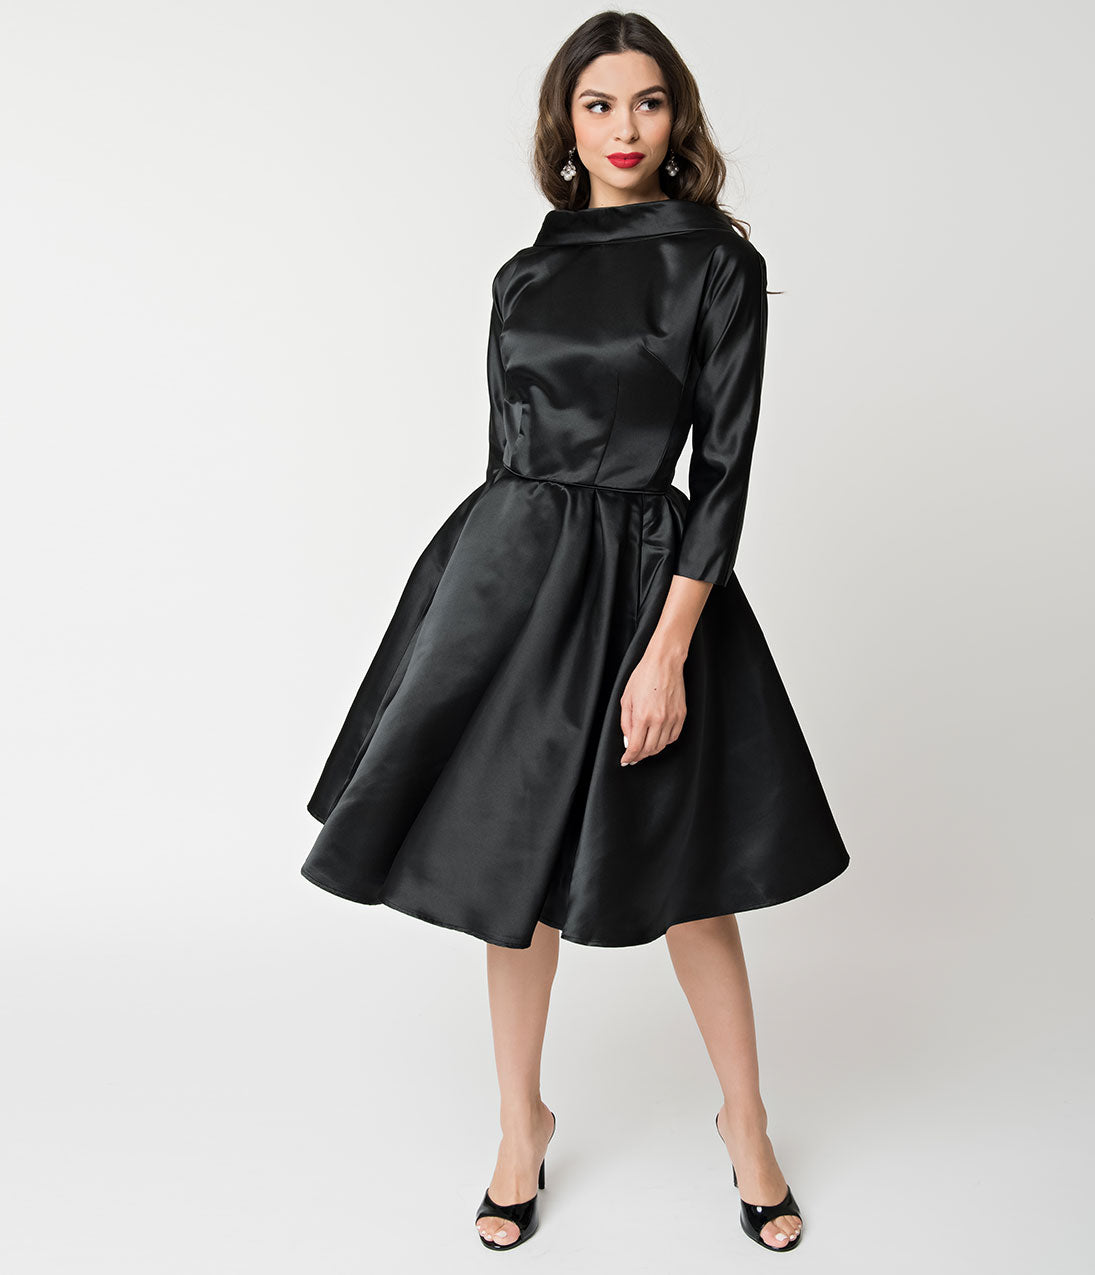 1950s Cocktail Dresses, Party Dresses Unique Vintage 1950S Style Black Satin Sleeved Lana Holiday Dress $128.00 AT vintagedancer.com